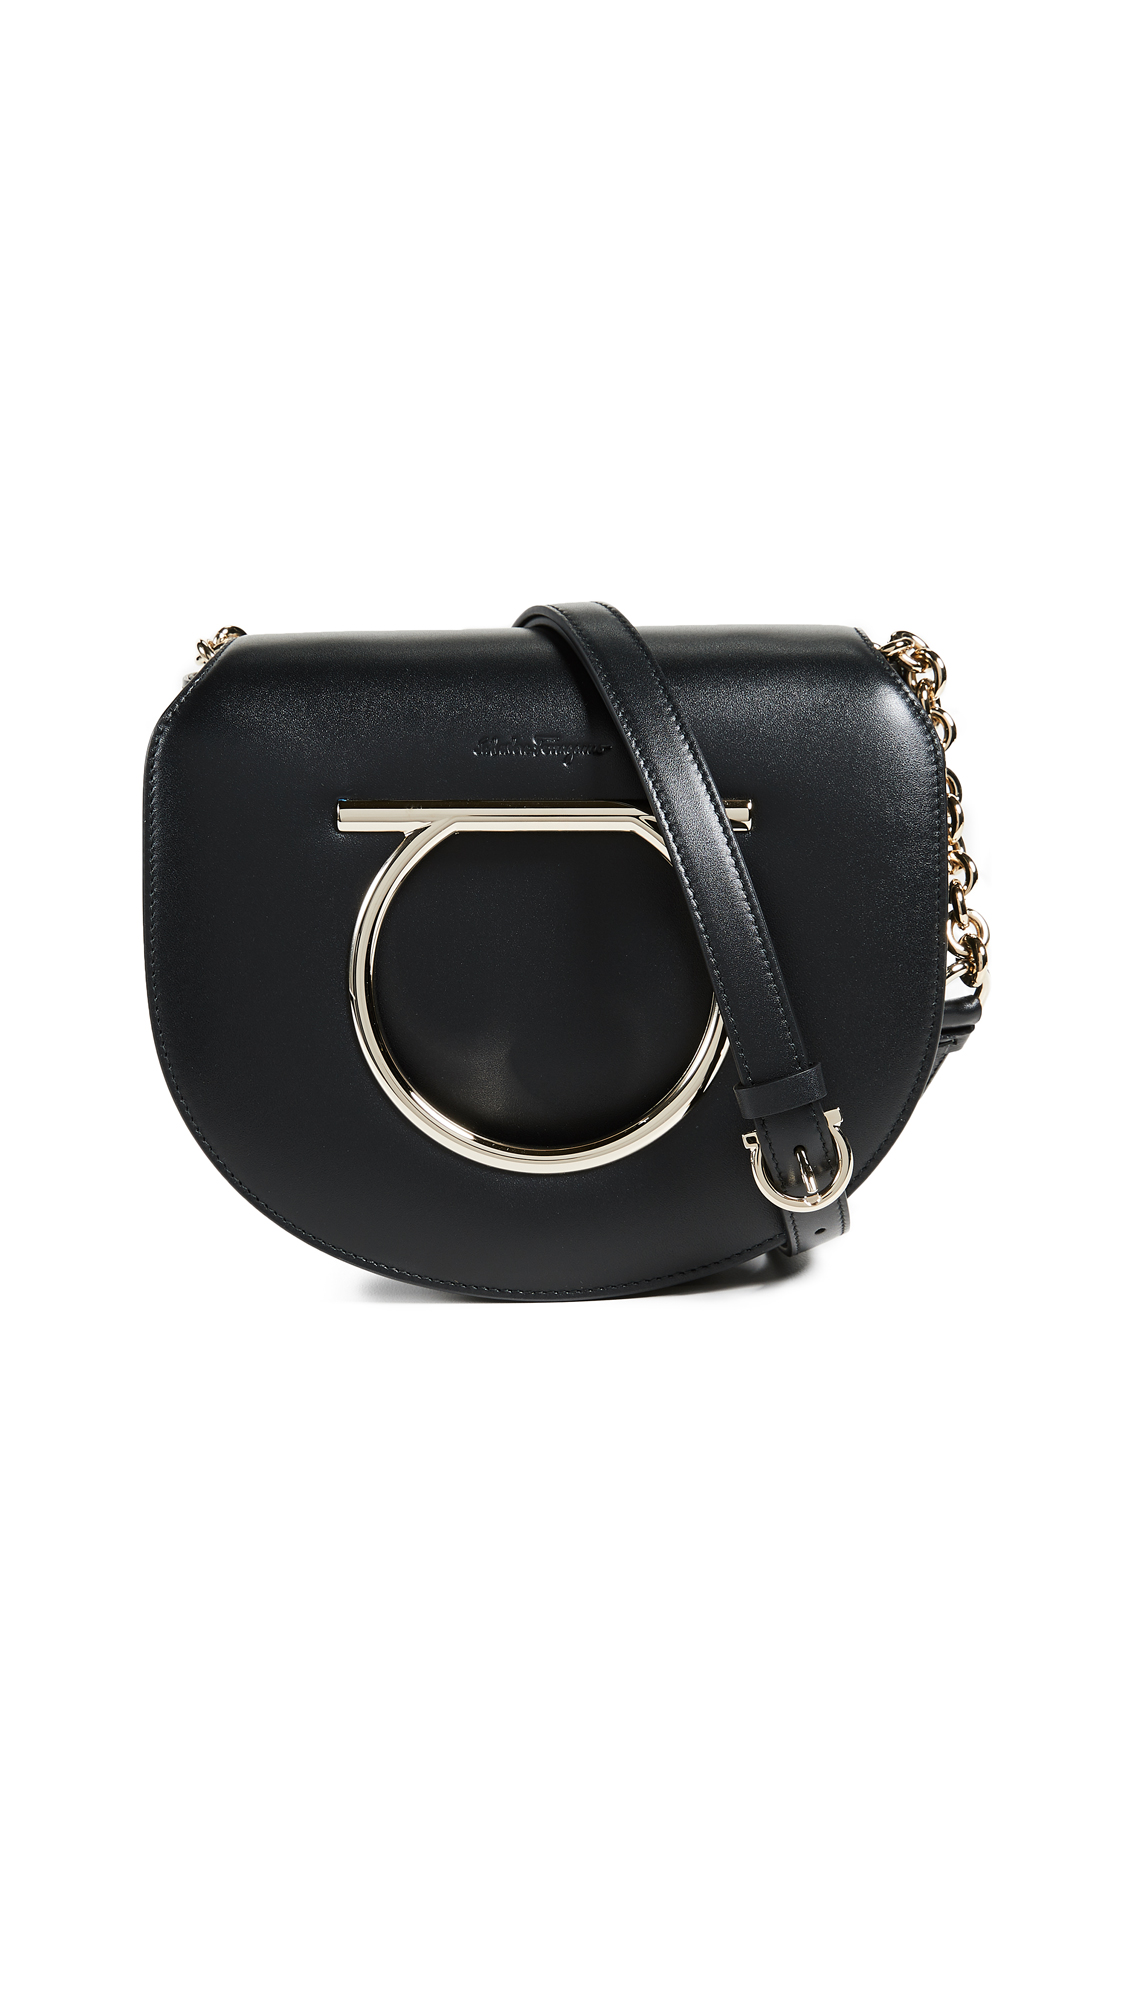 Salvatore Ferragamo Vela Crossbody